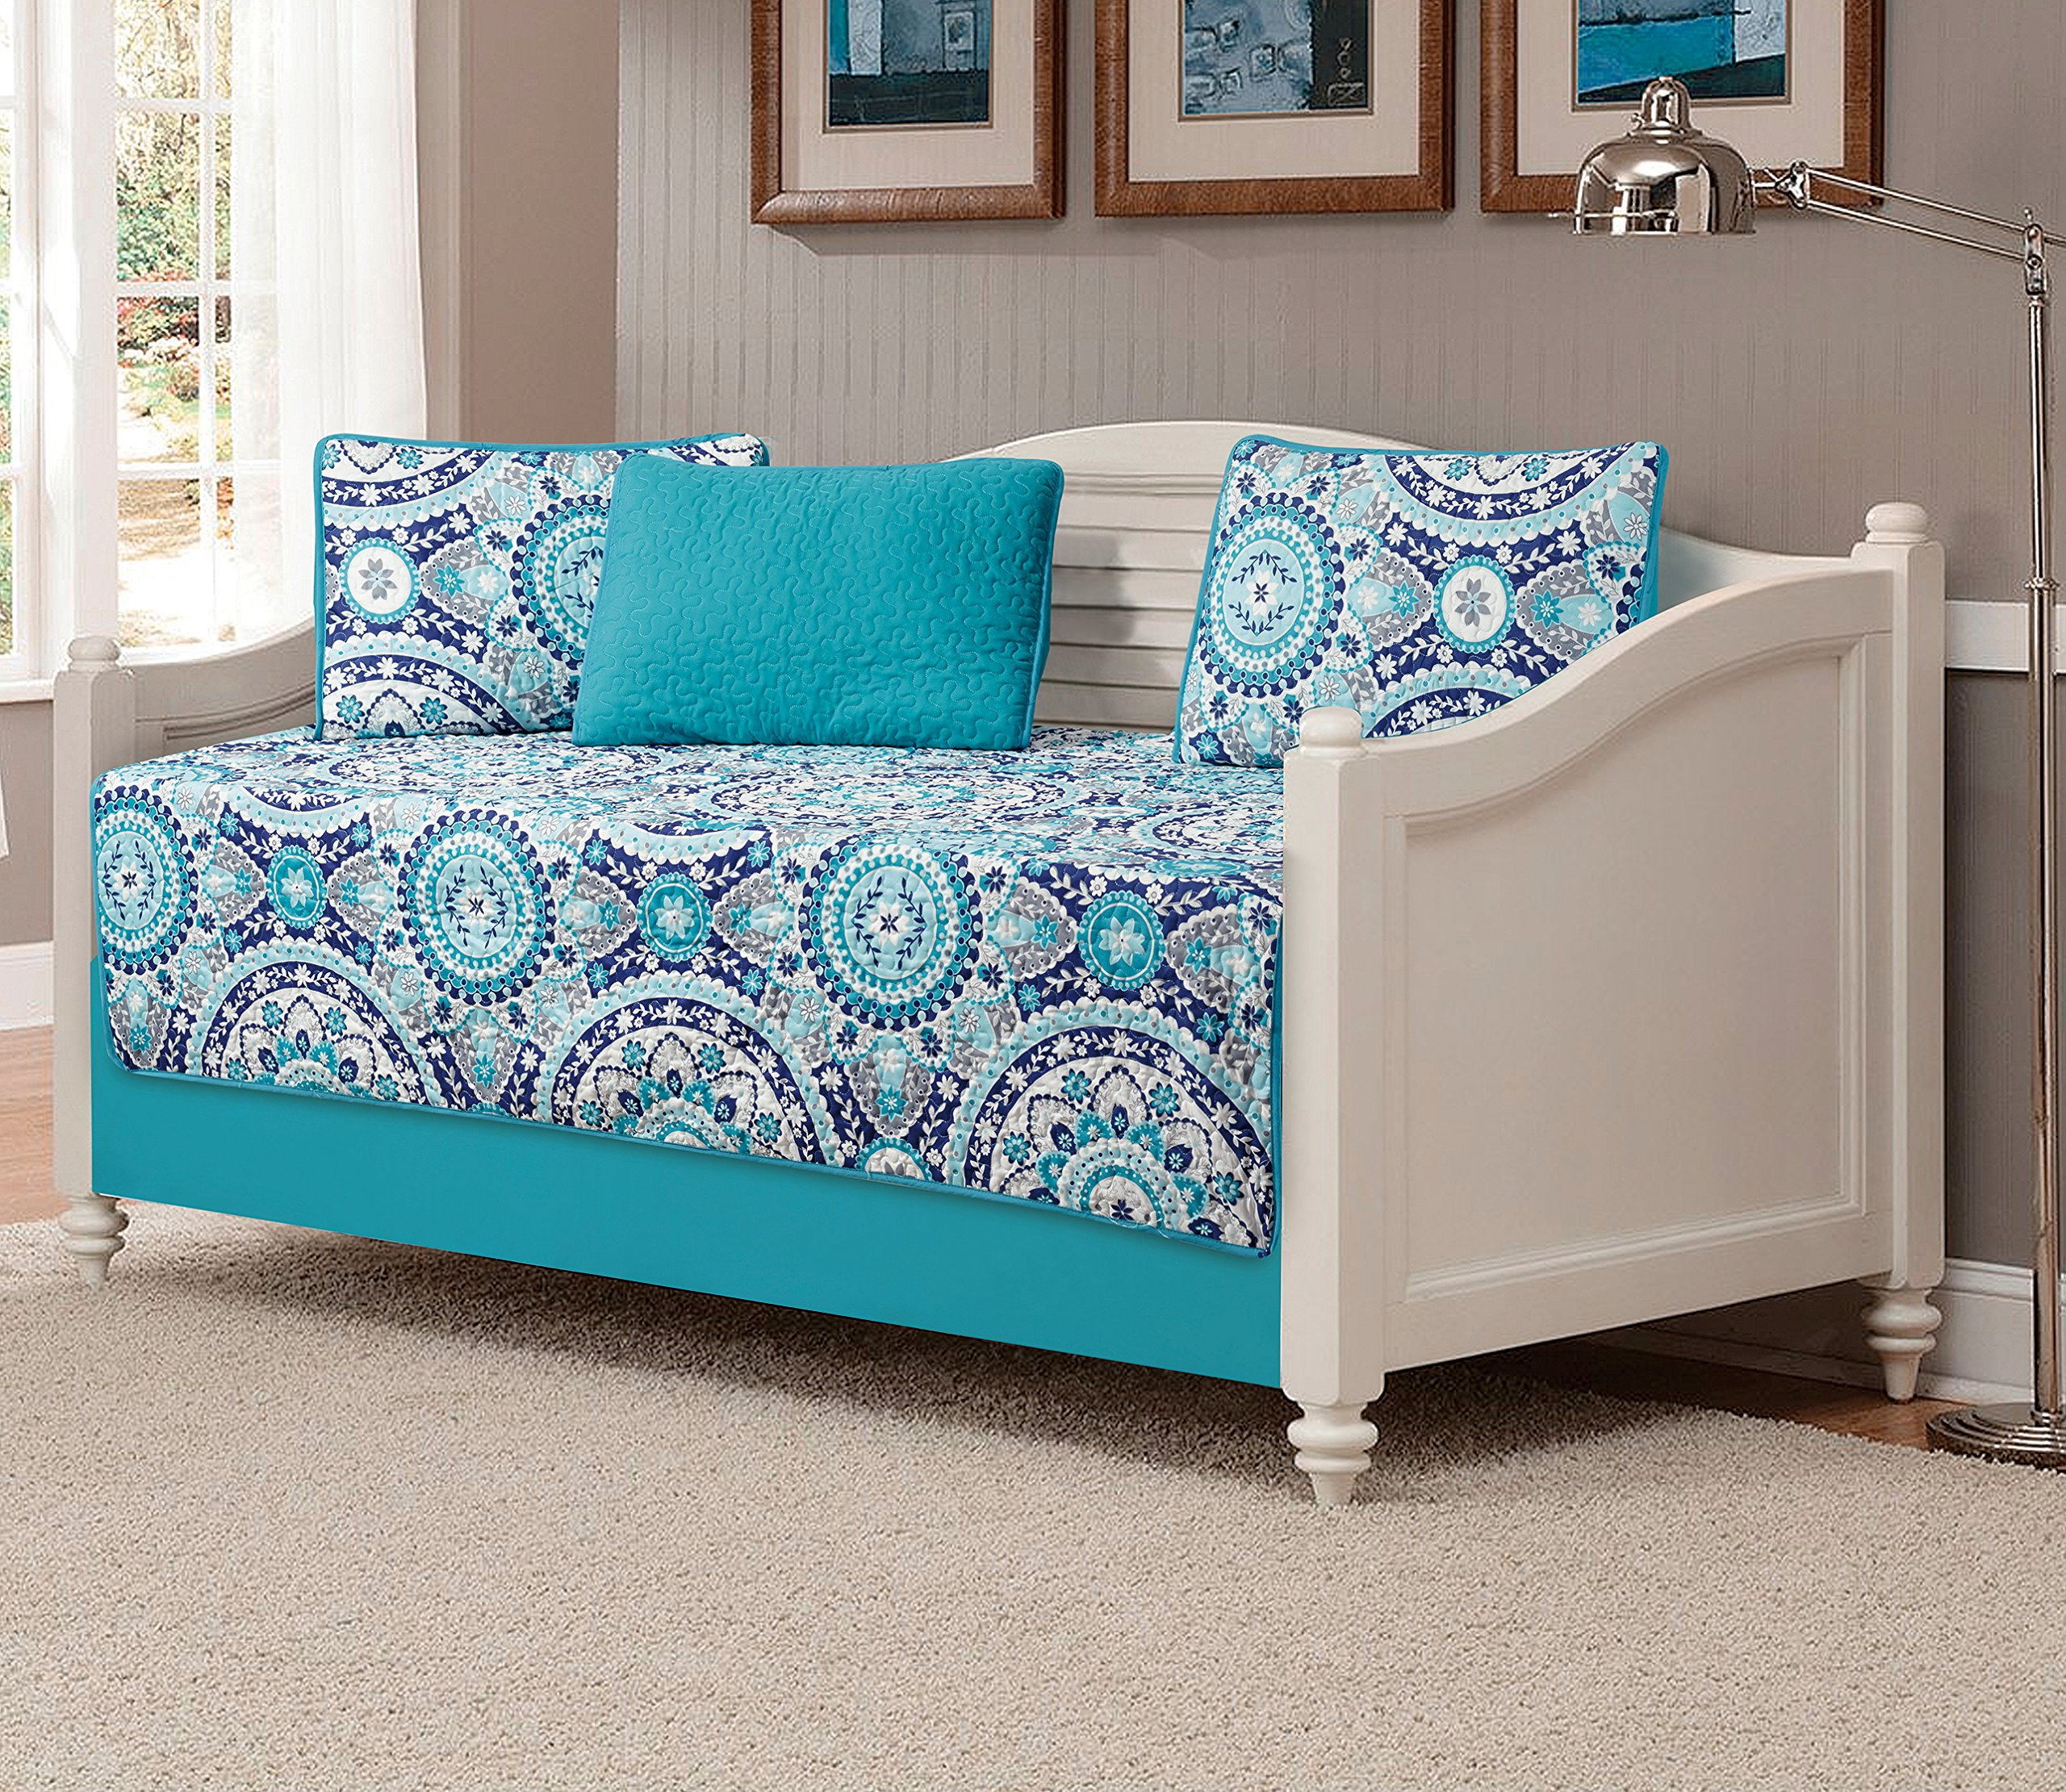 Mk Collection 5pc Daybed quilted Floral Turquoise Teel Blue Grey new #185